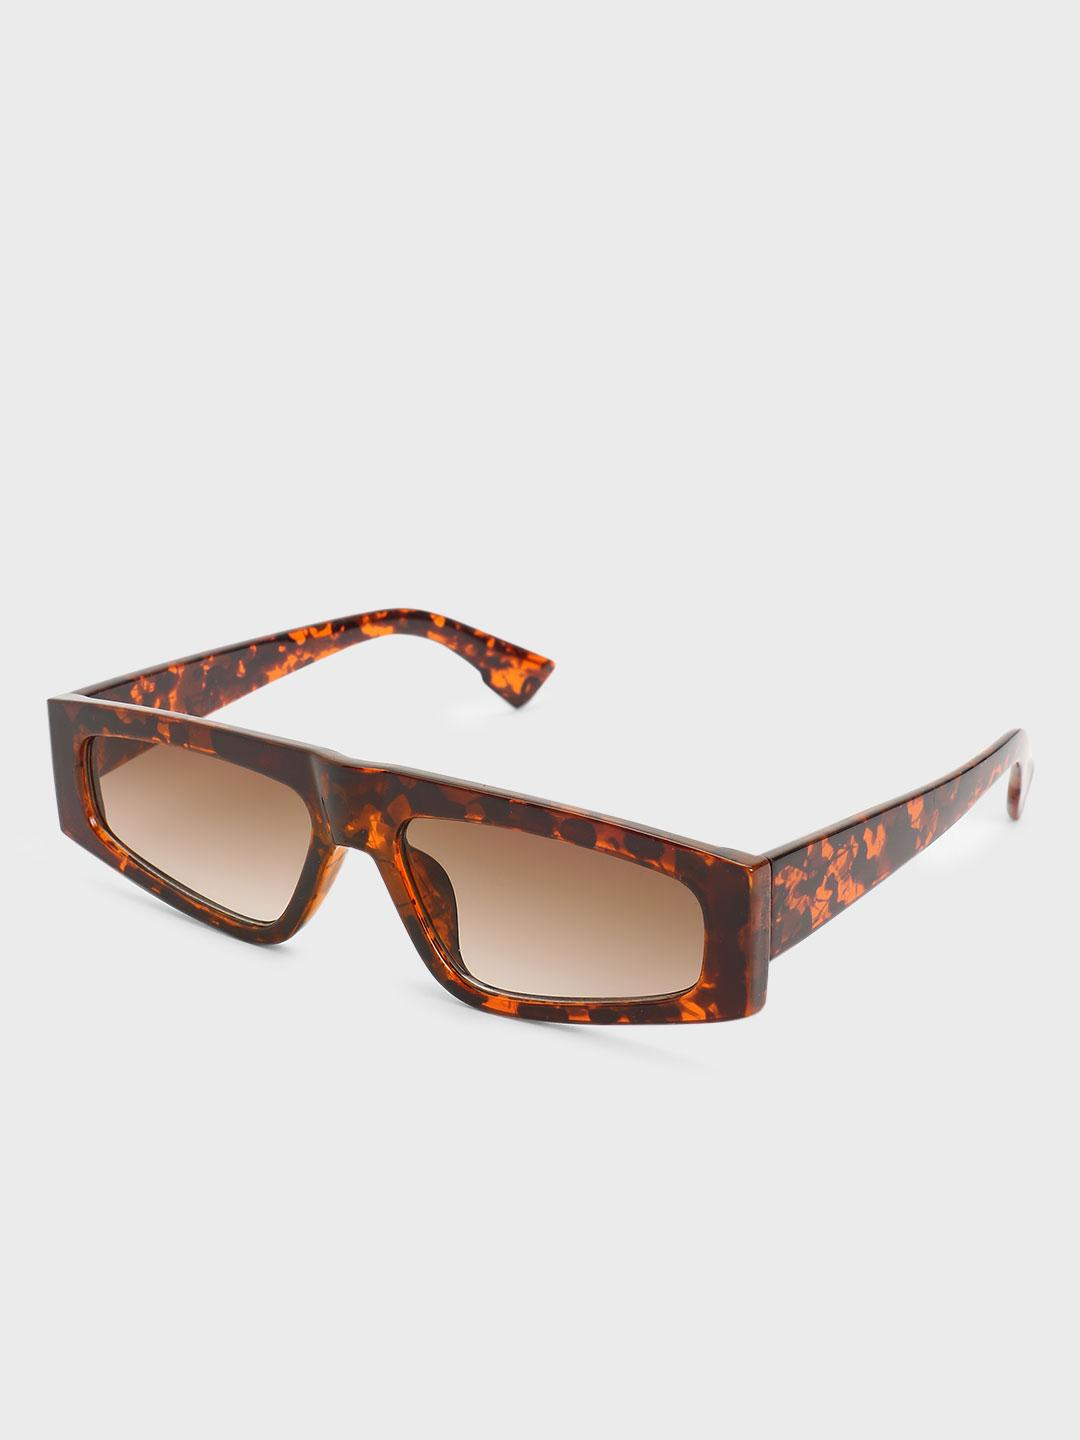 Pataaka Brown Tortoise Shell Frame Retro Sunglasses 1